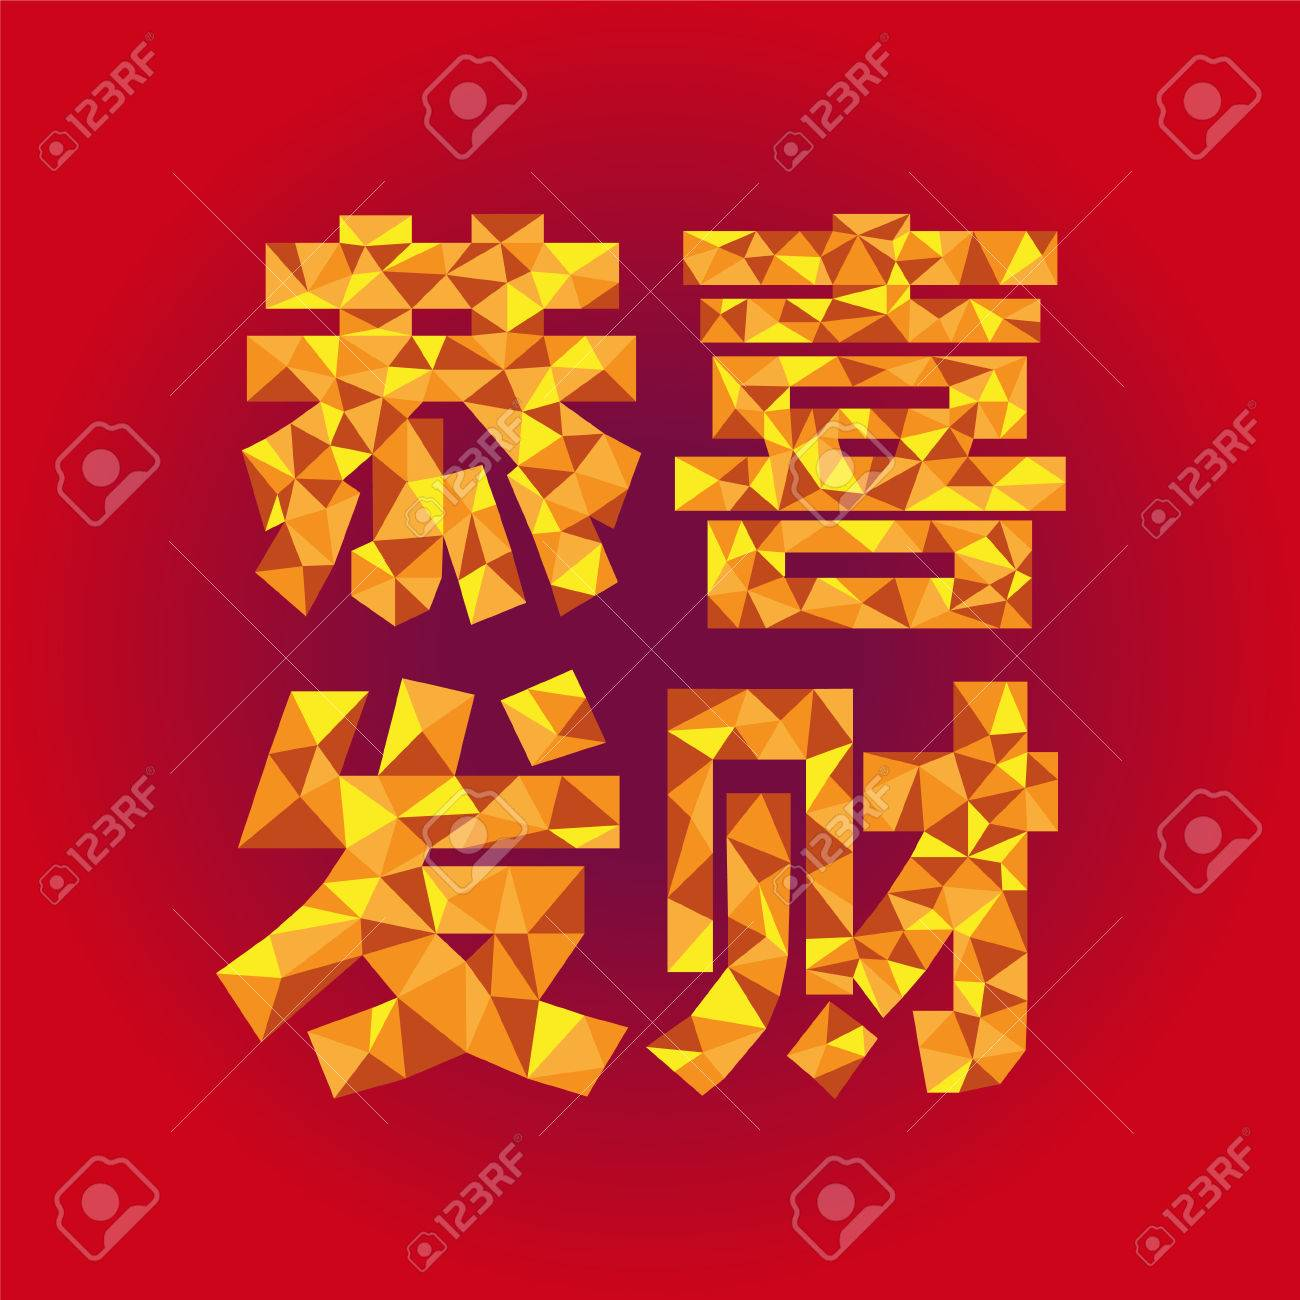 Chinese Characters Of Gong Xi Fat Cai Meaning Happy Chinese New